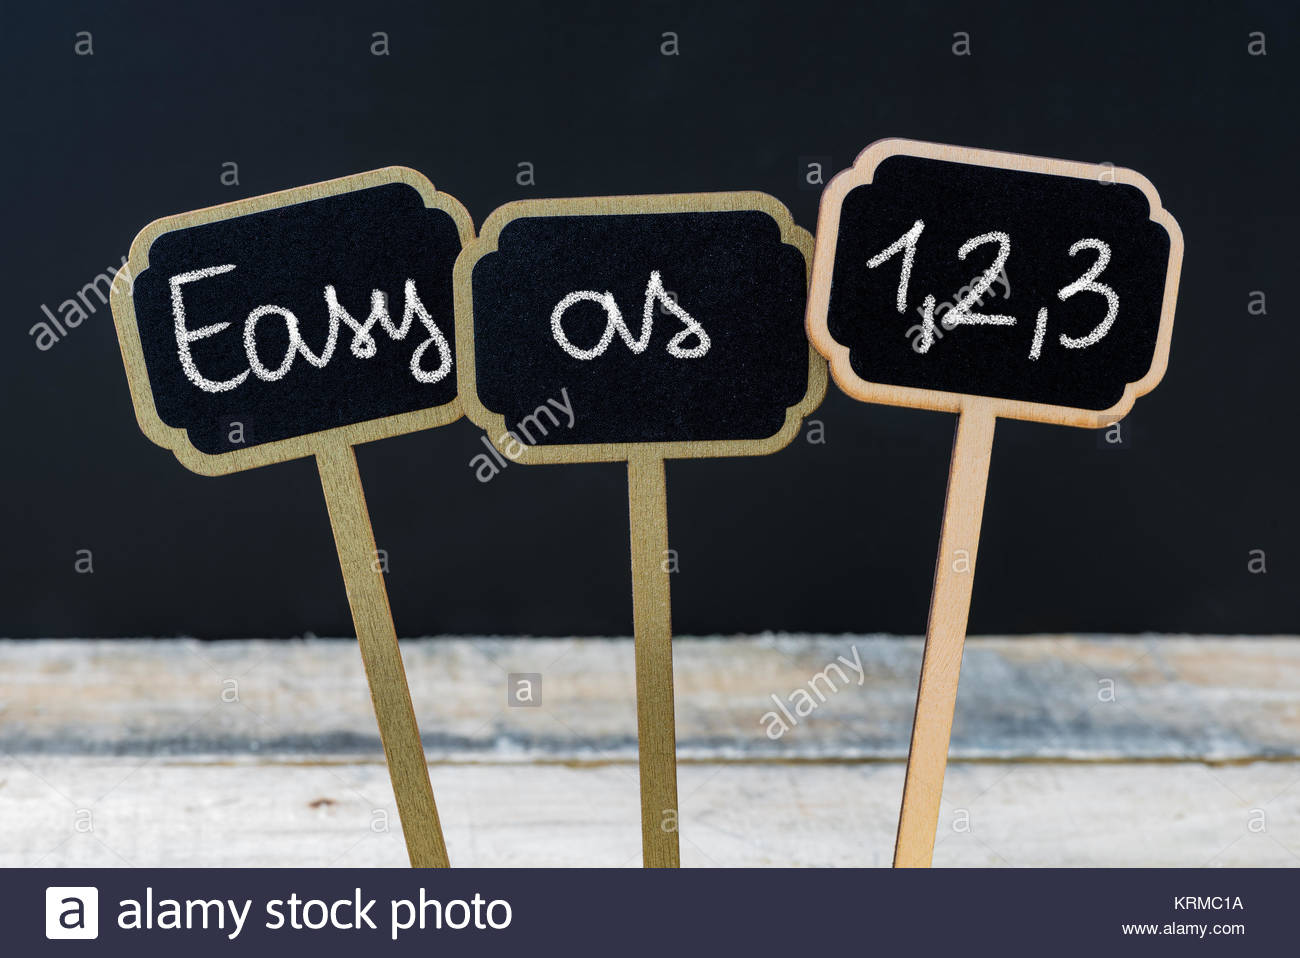 Concept message EASY AS 1,2,3 written with chalk - Stock Image